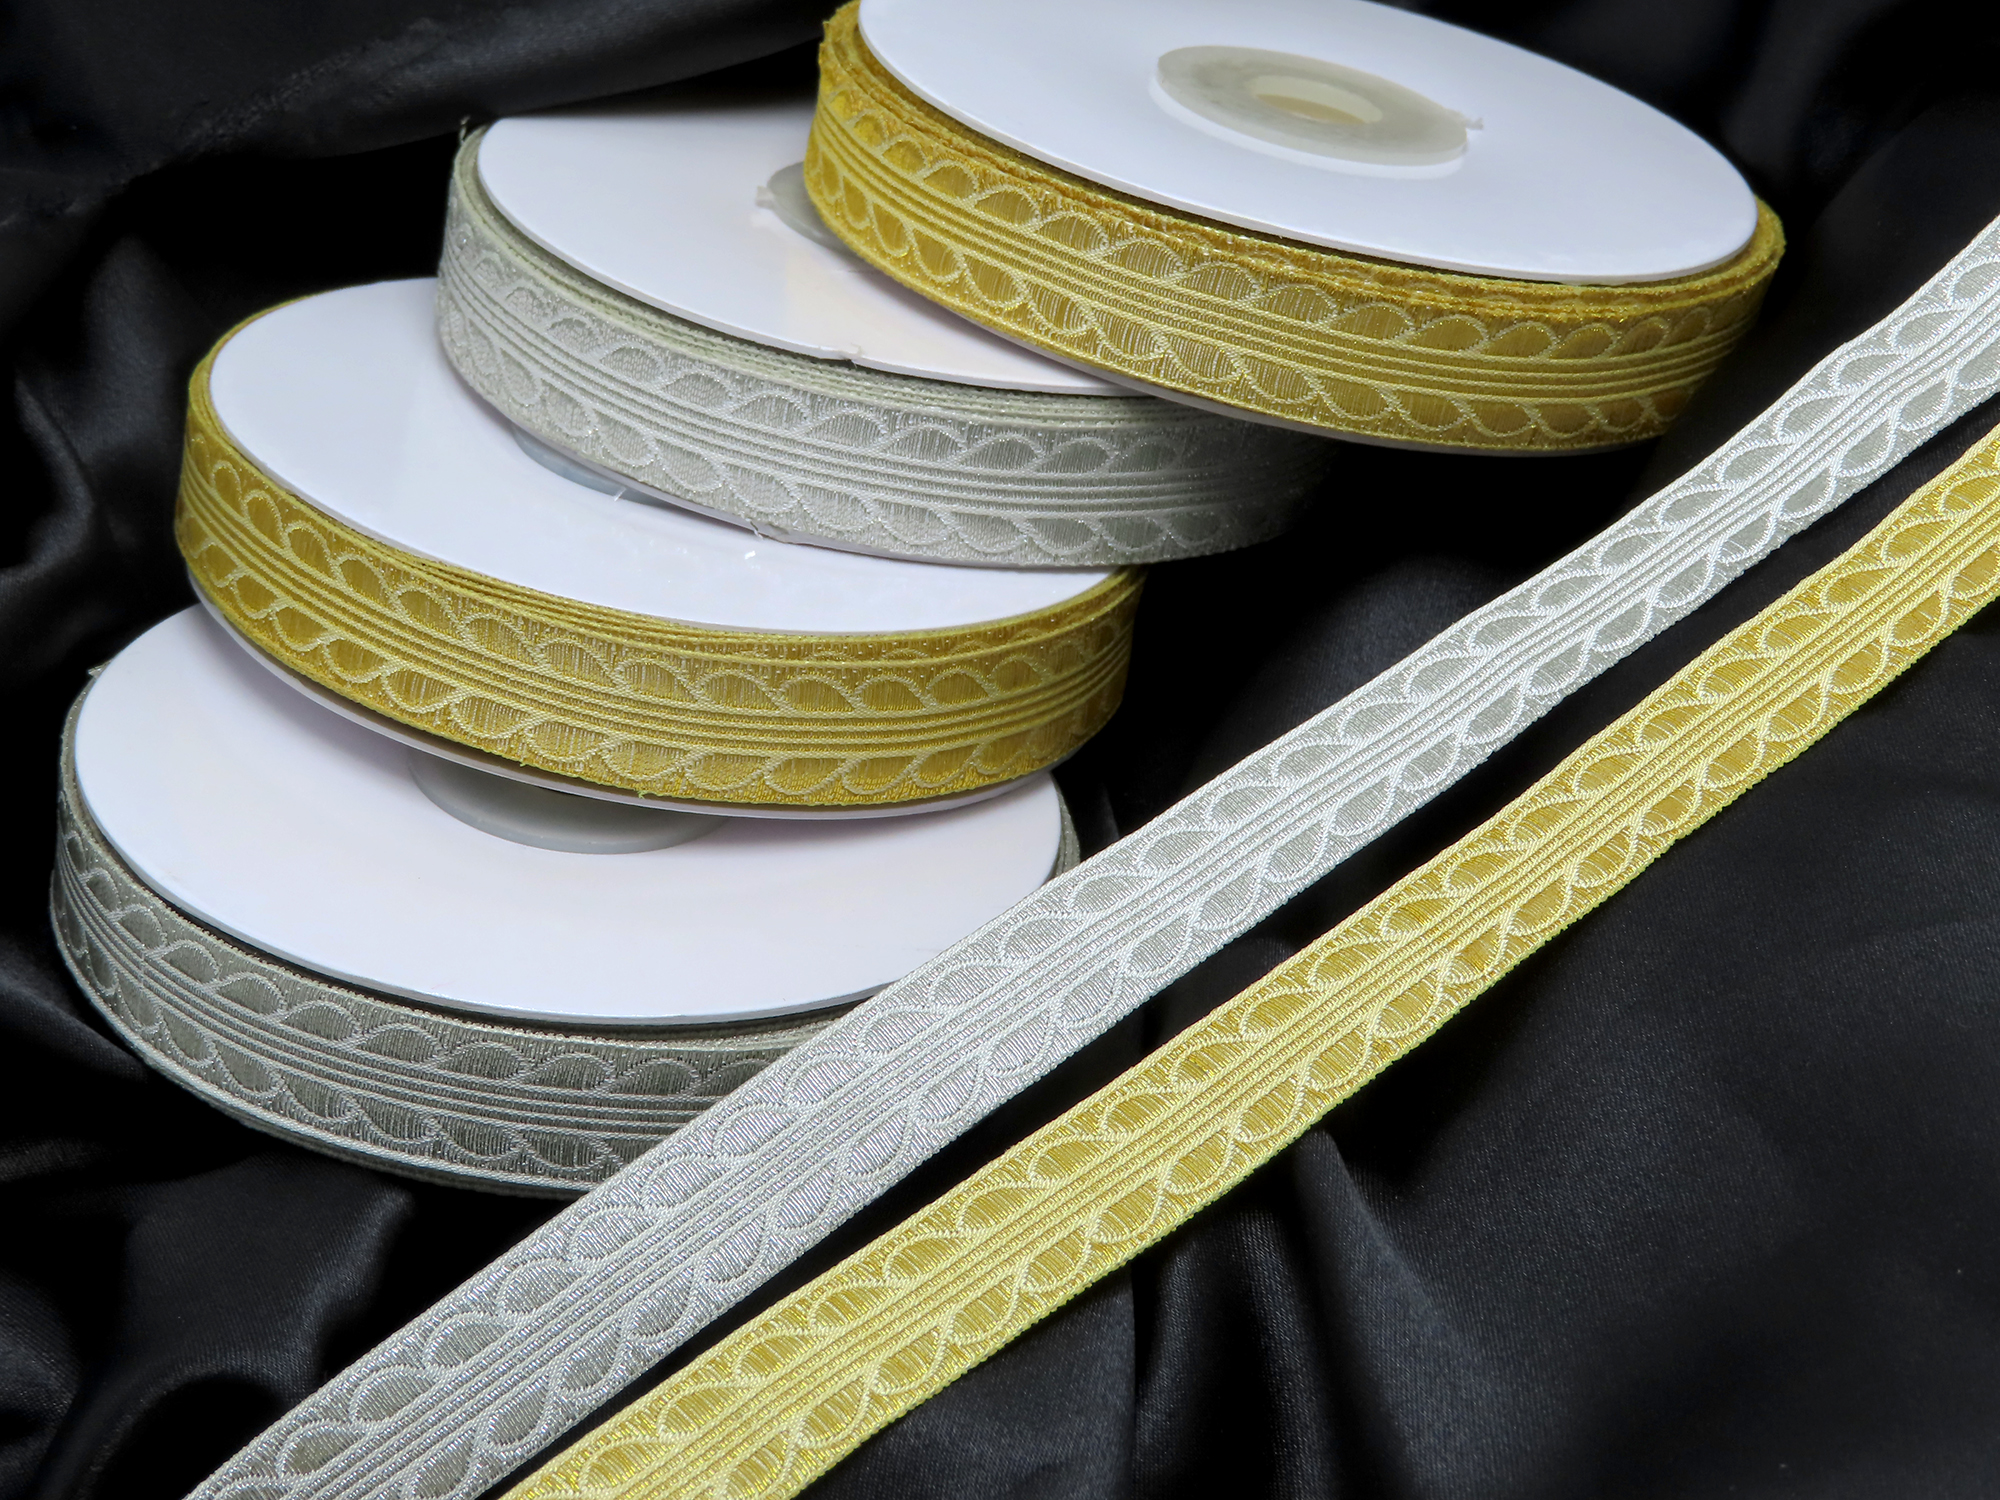 """Jacquard Ribbon 5/8"""" (16mm) 18 mtr roll Gold or Silver  excellent Composition for liturgical bOrder"""